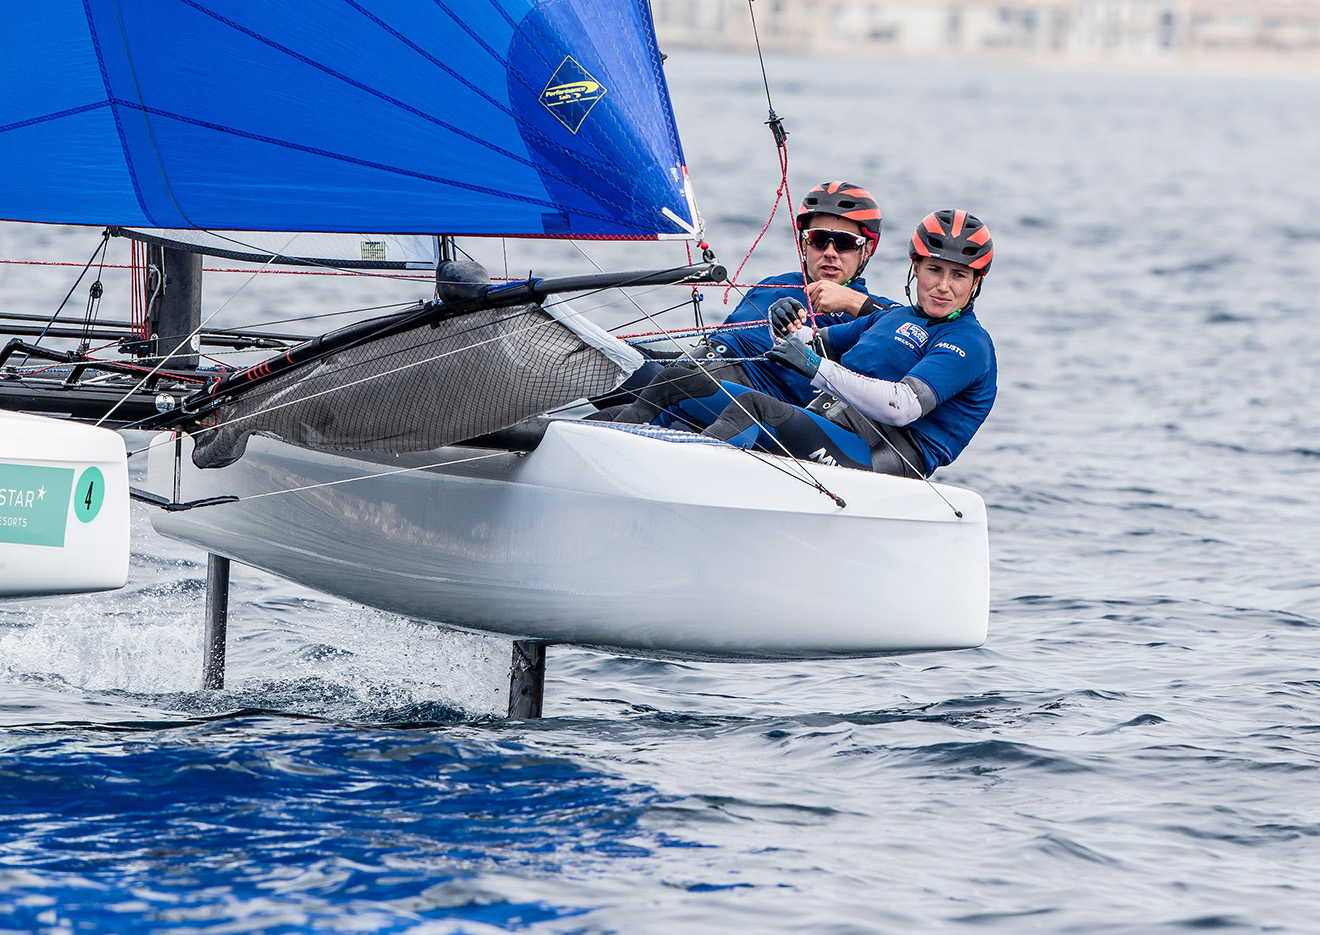 John Gimson and Anna Burnet jump to 2nd in the Nacra 17.